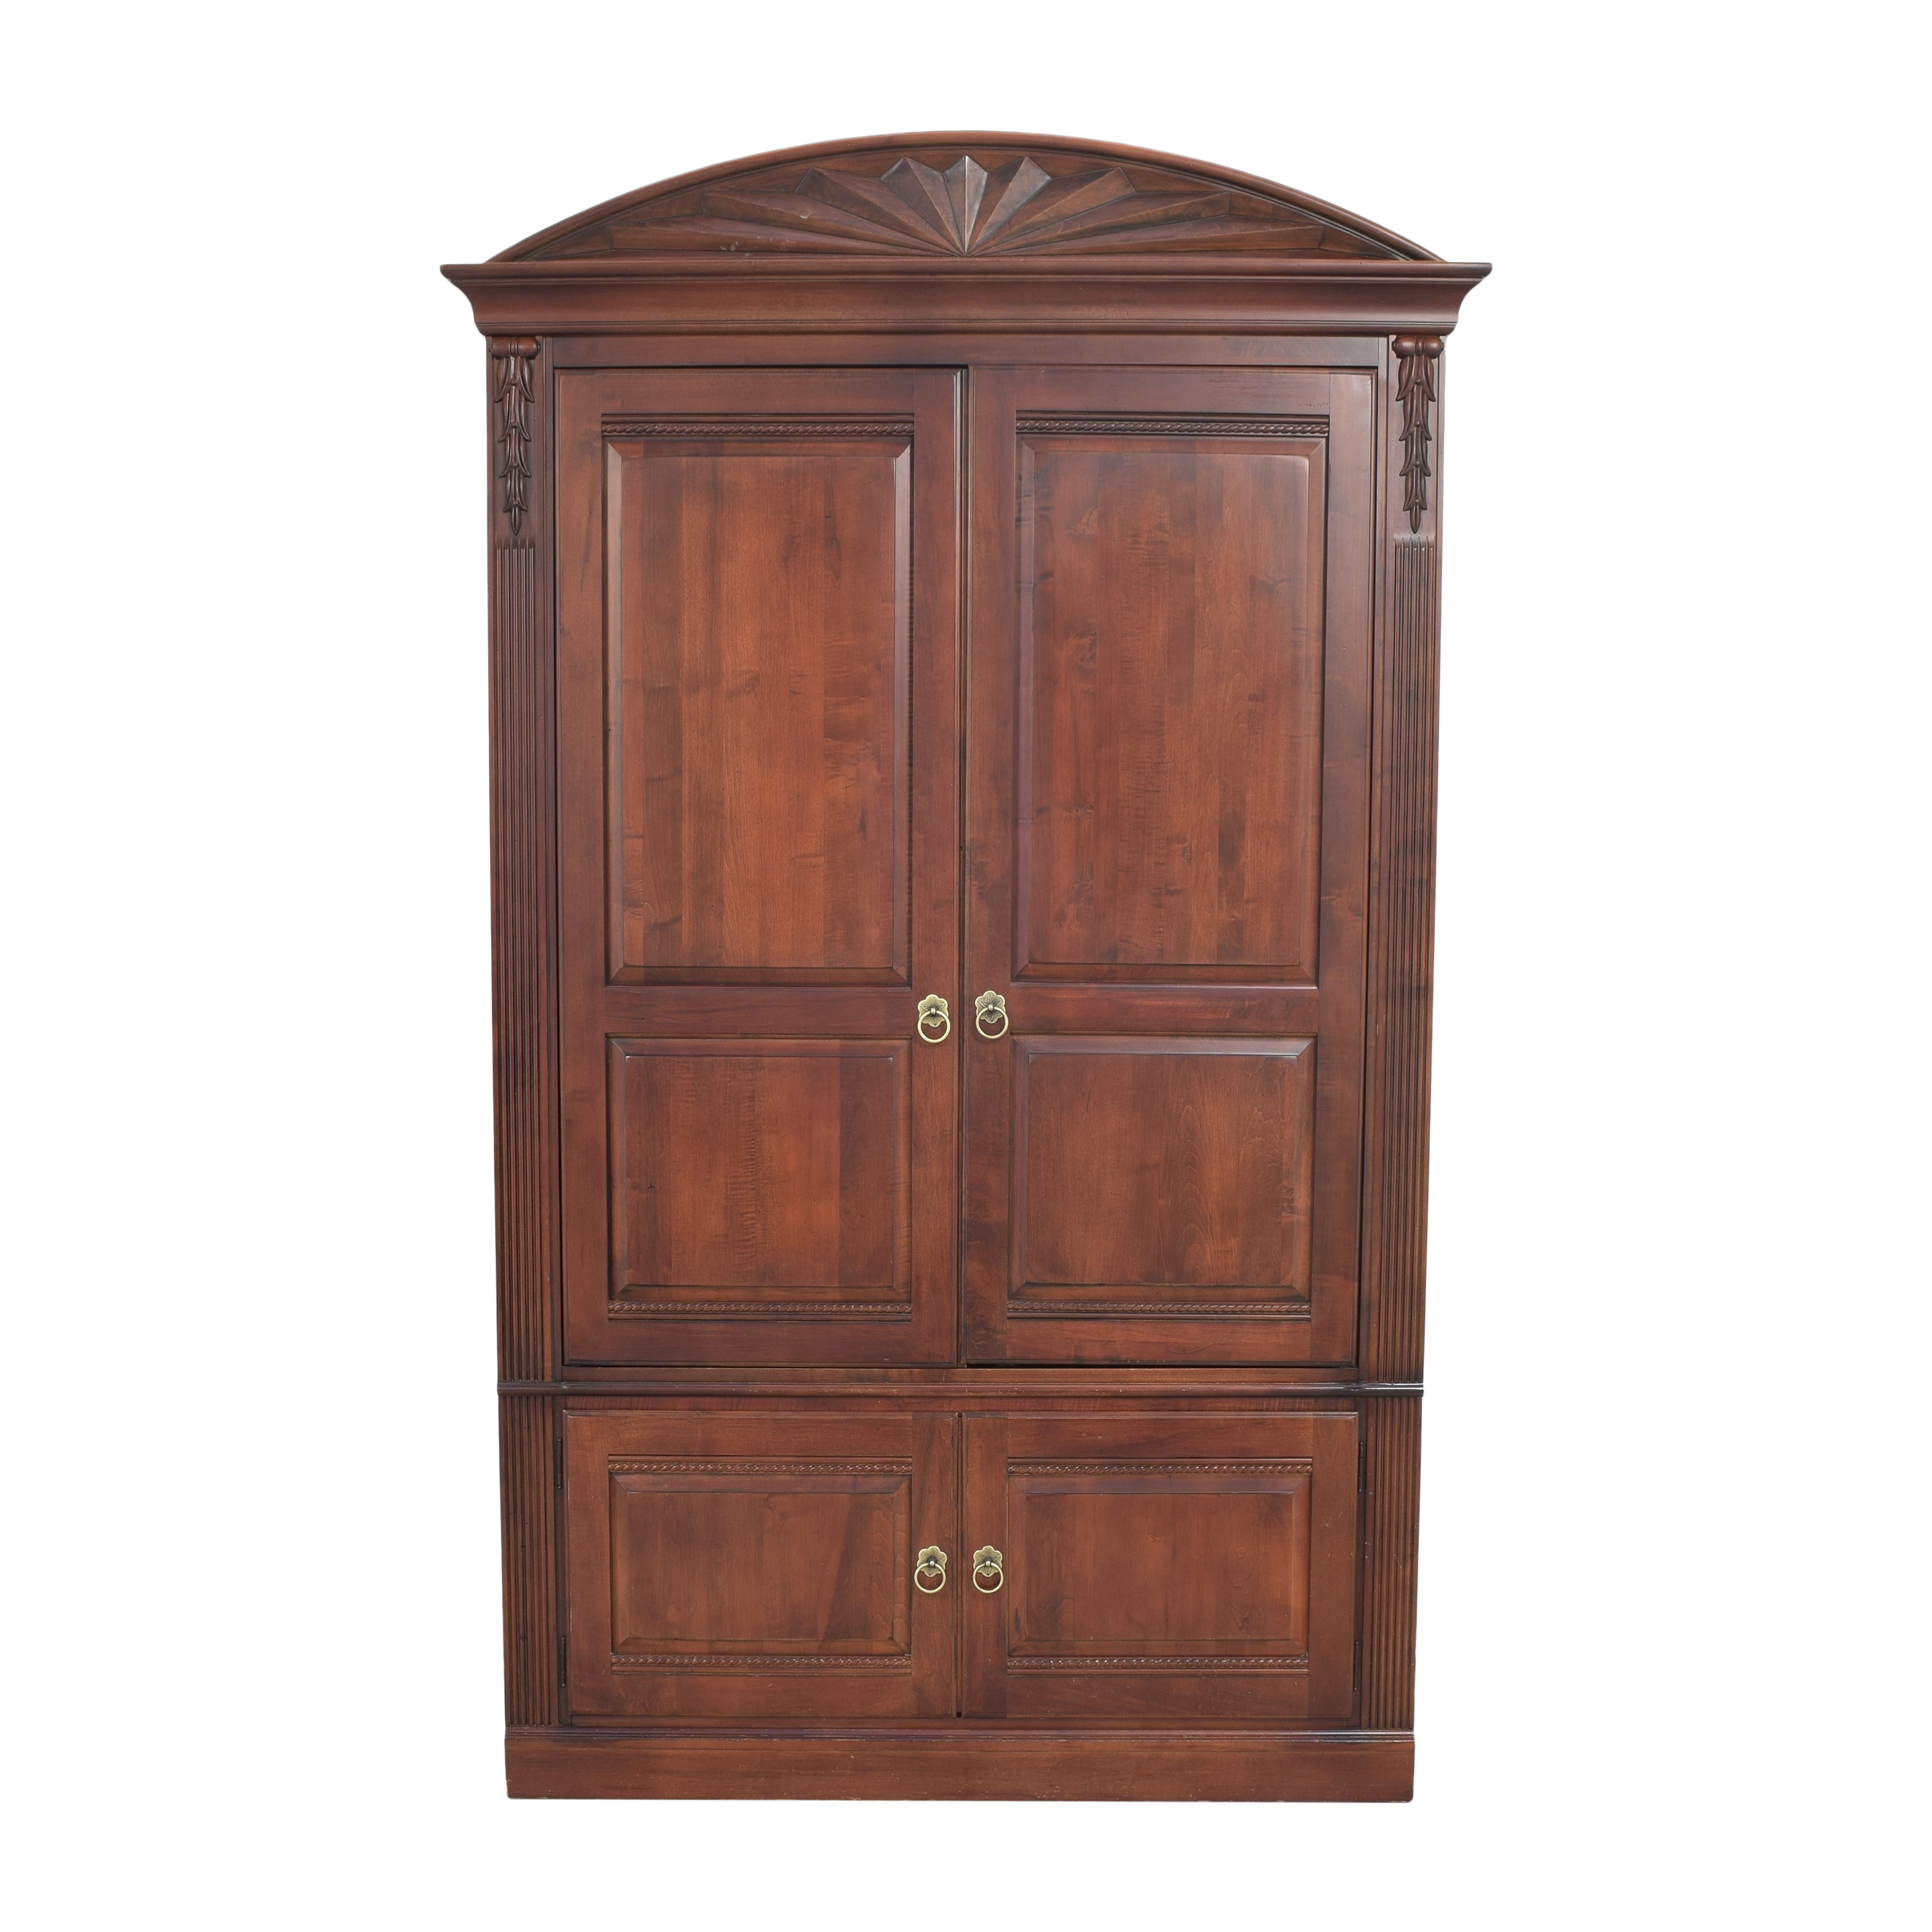 Ethan Allen Ethan Allen British Classics Media Armoire used